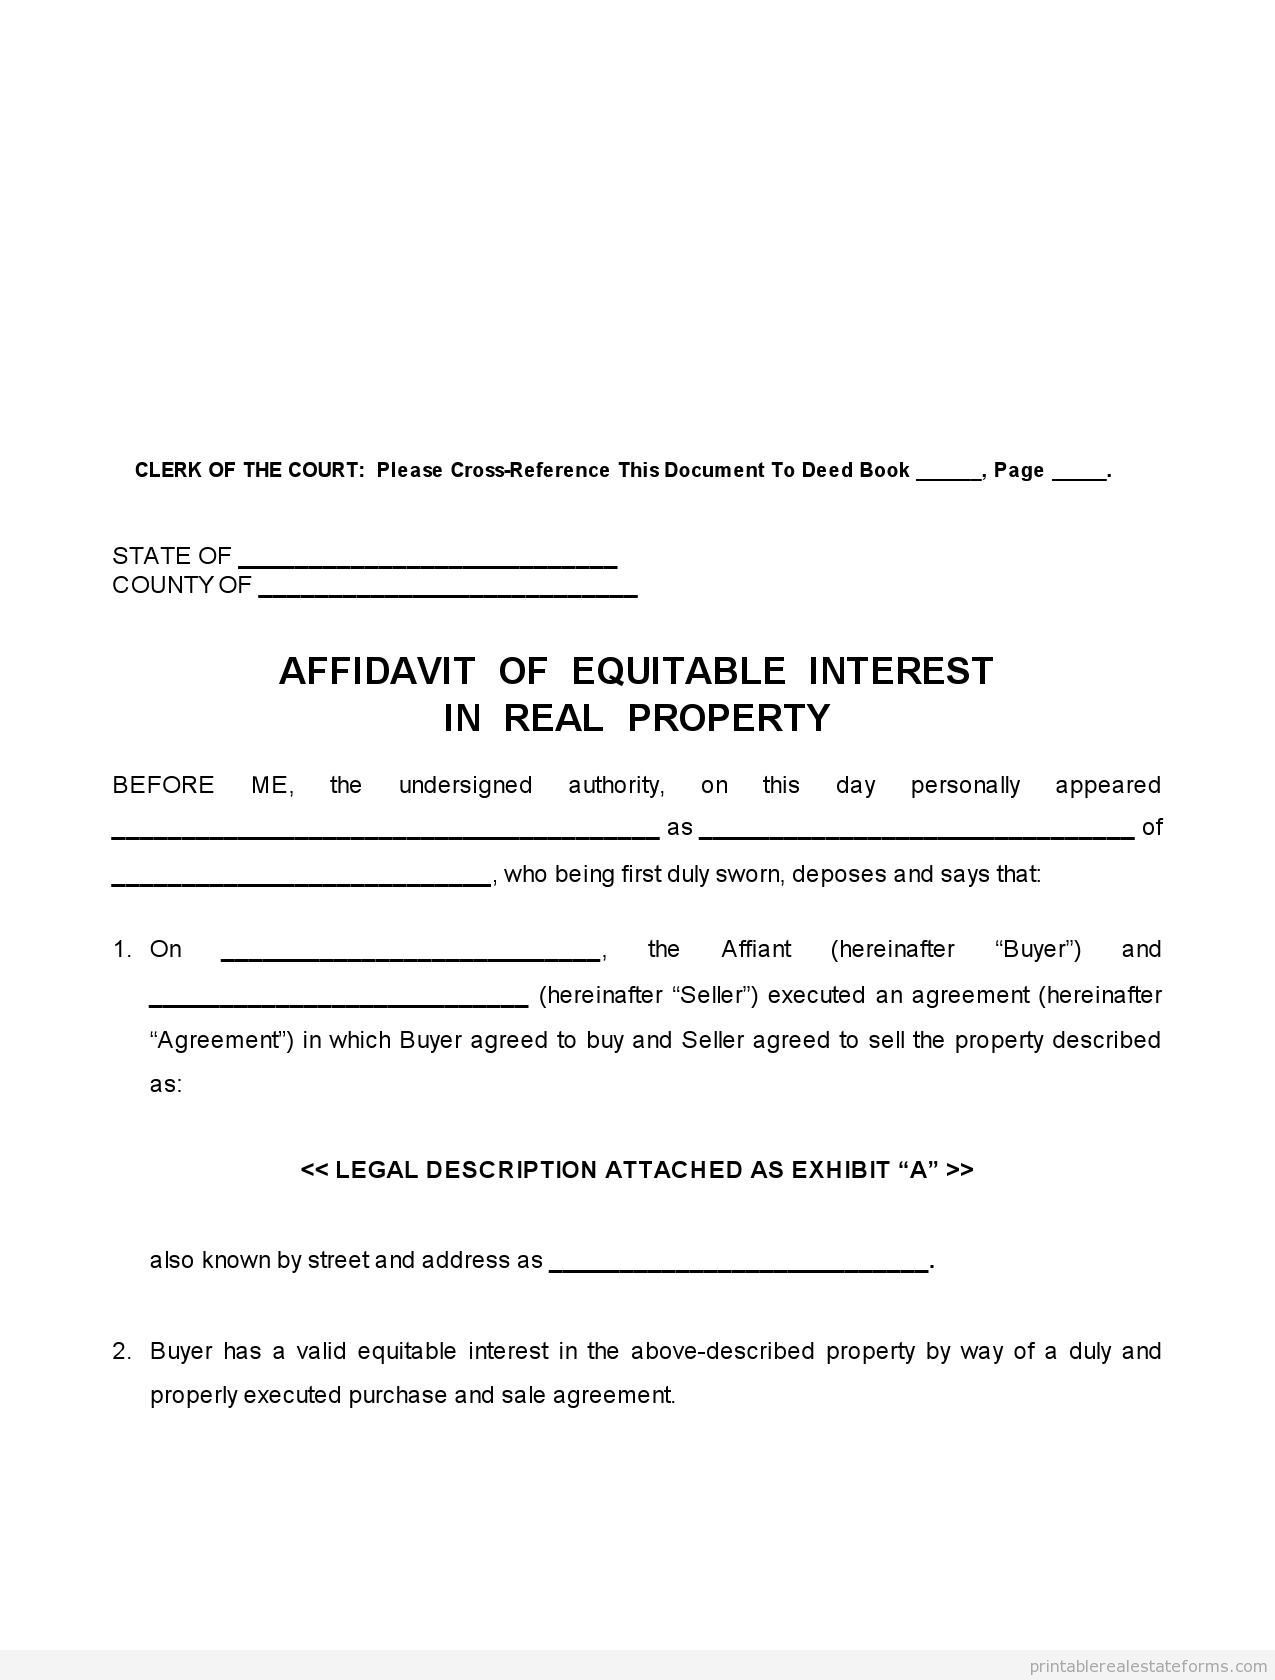 Printable Sample Affidavit Of Equitable Interest Form Free